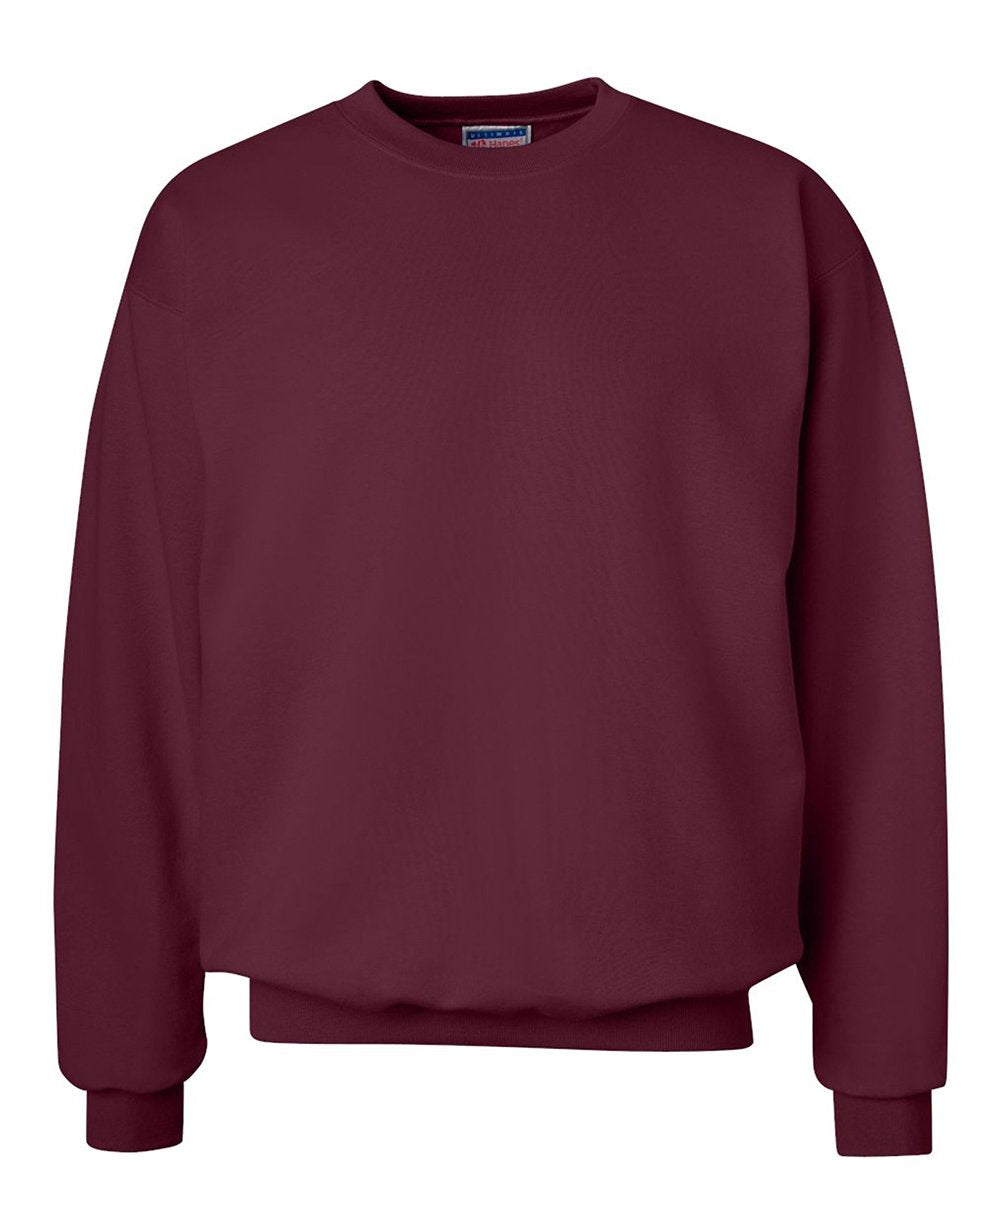 Sweater in Maroon